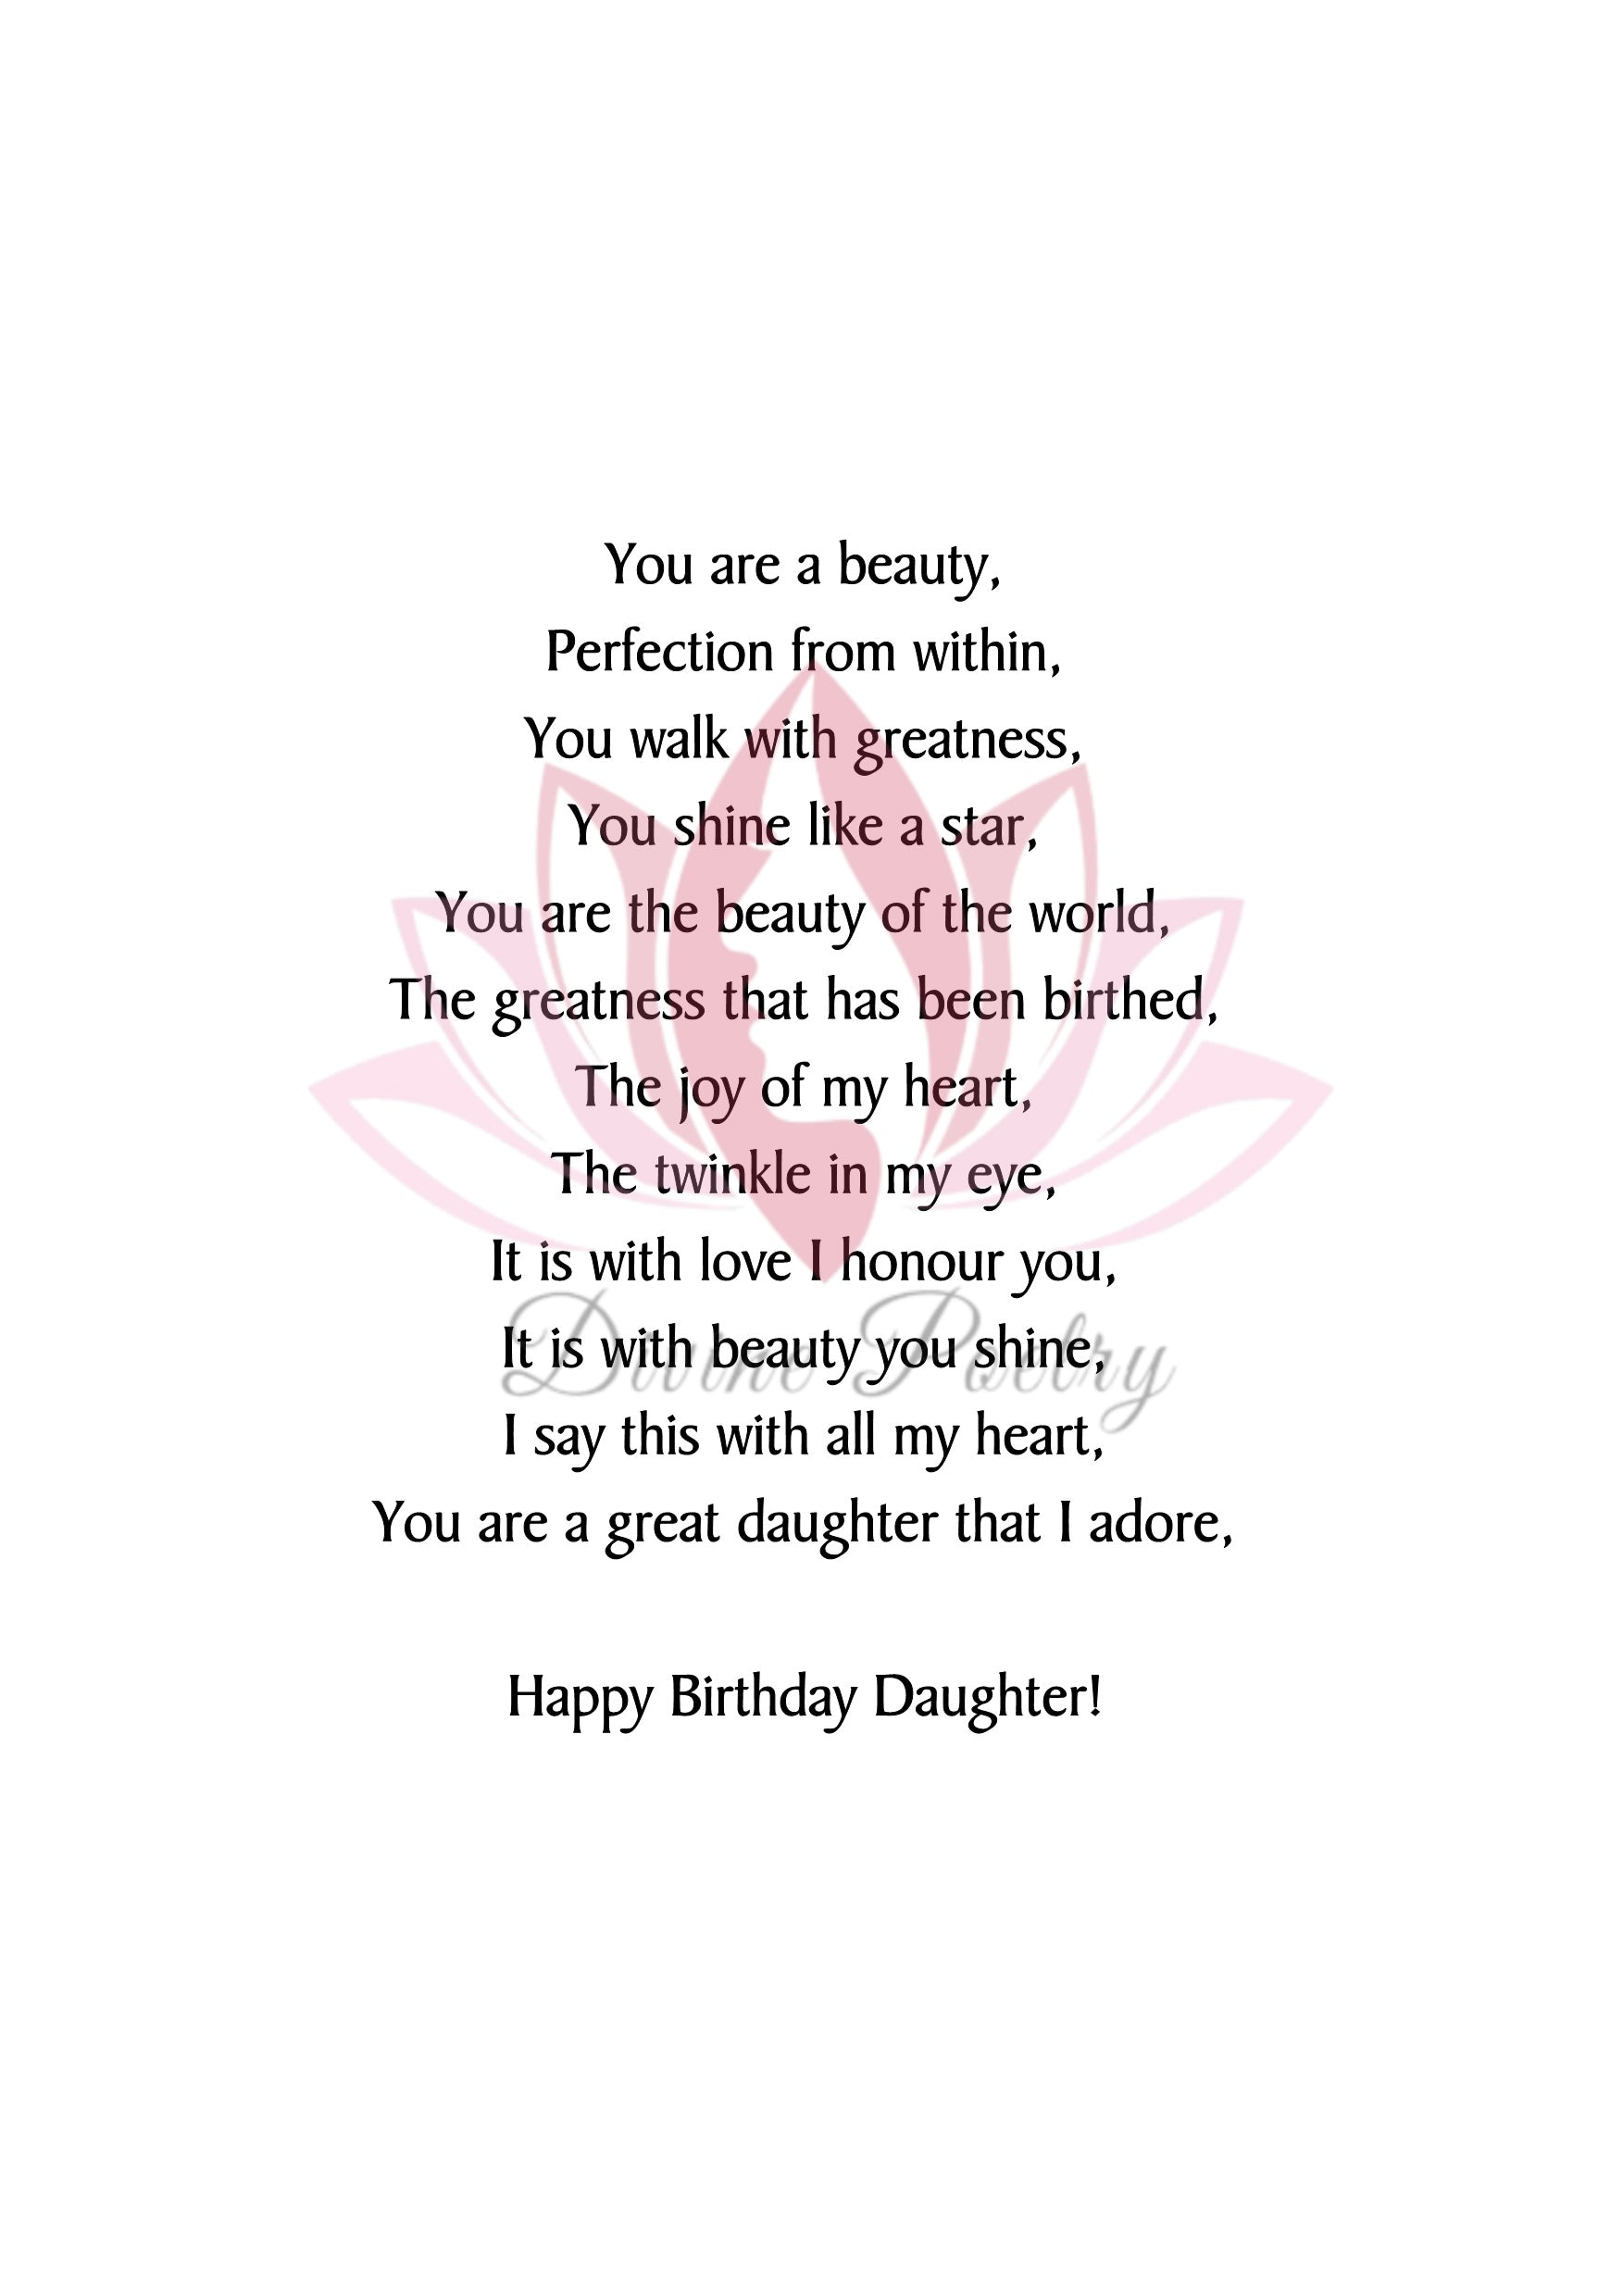 Happy Birthday Stepdaughter - Divine Poetry